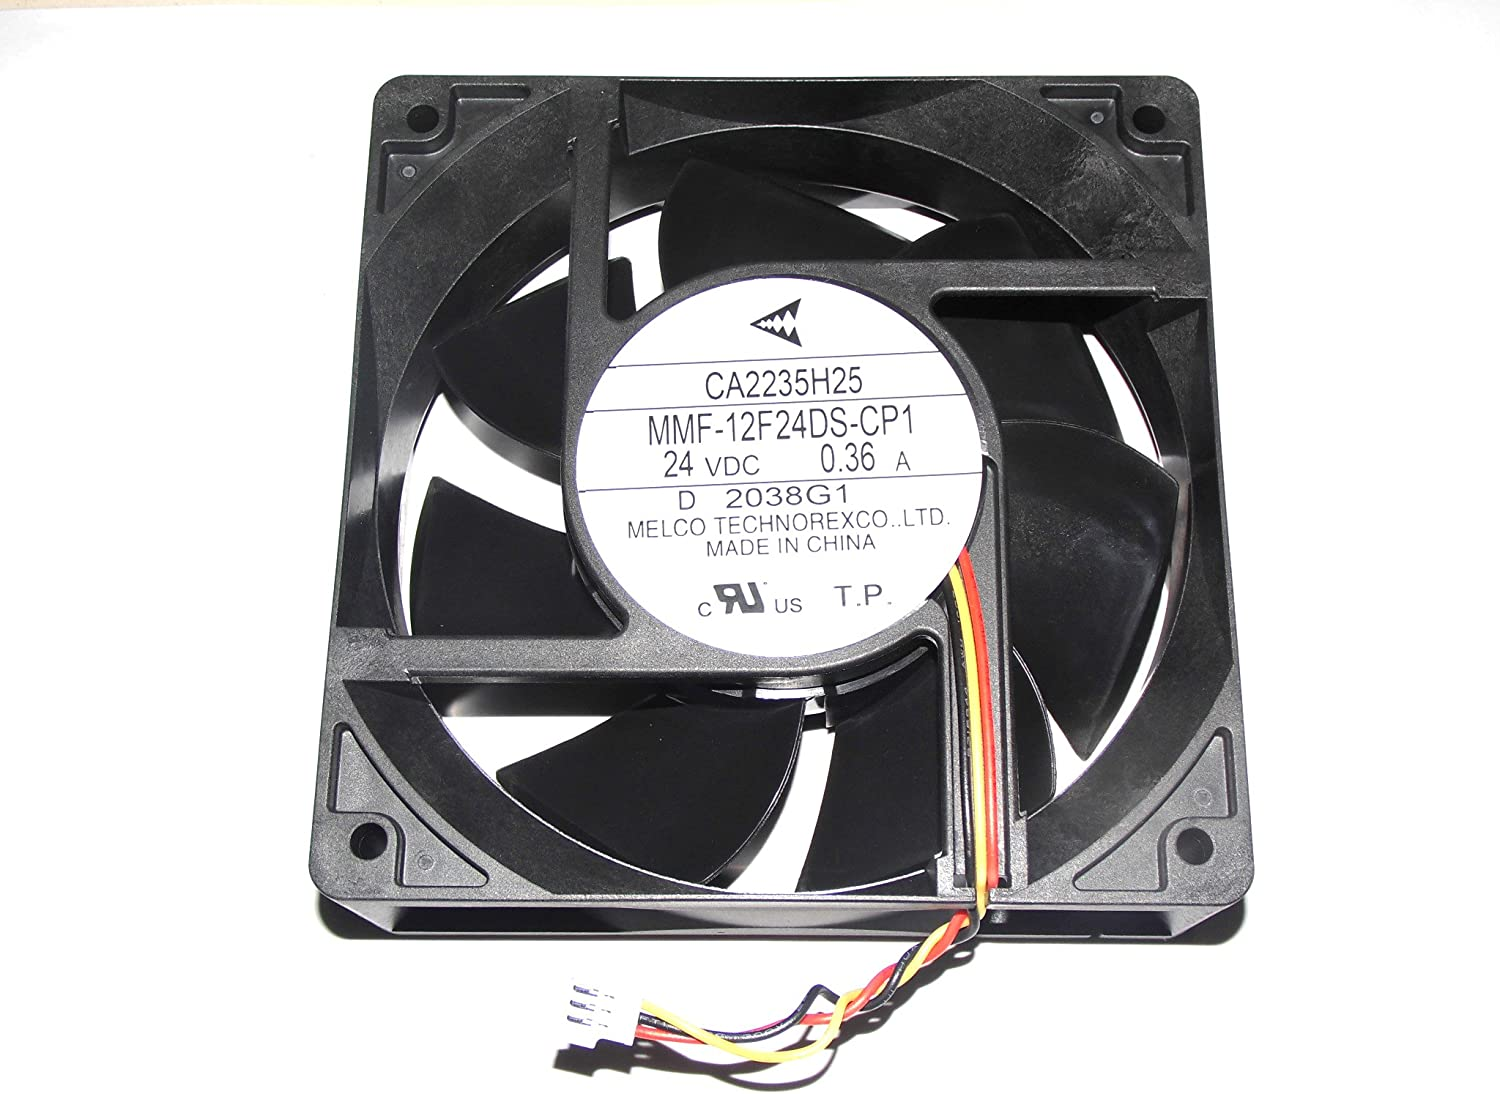 MITSUBISHI 120MM MMF-12F24DS-CP1 24V 0.36A CA2235H25 3Wire Cooling Fan